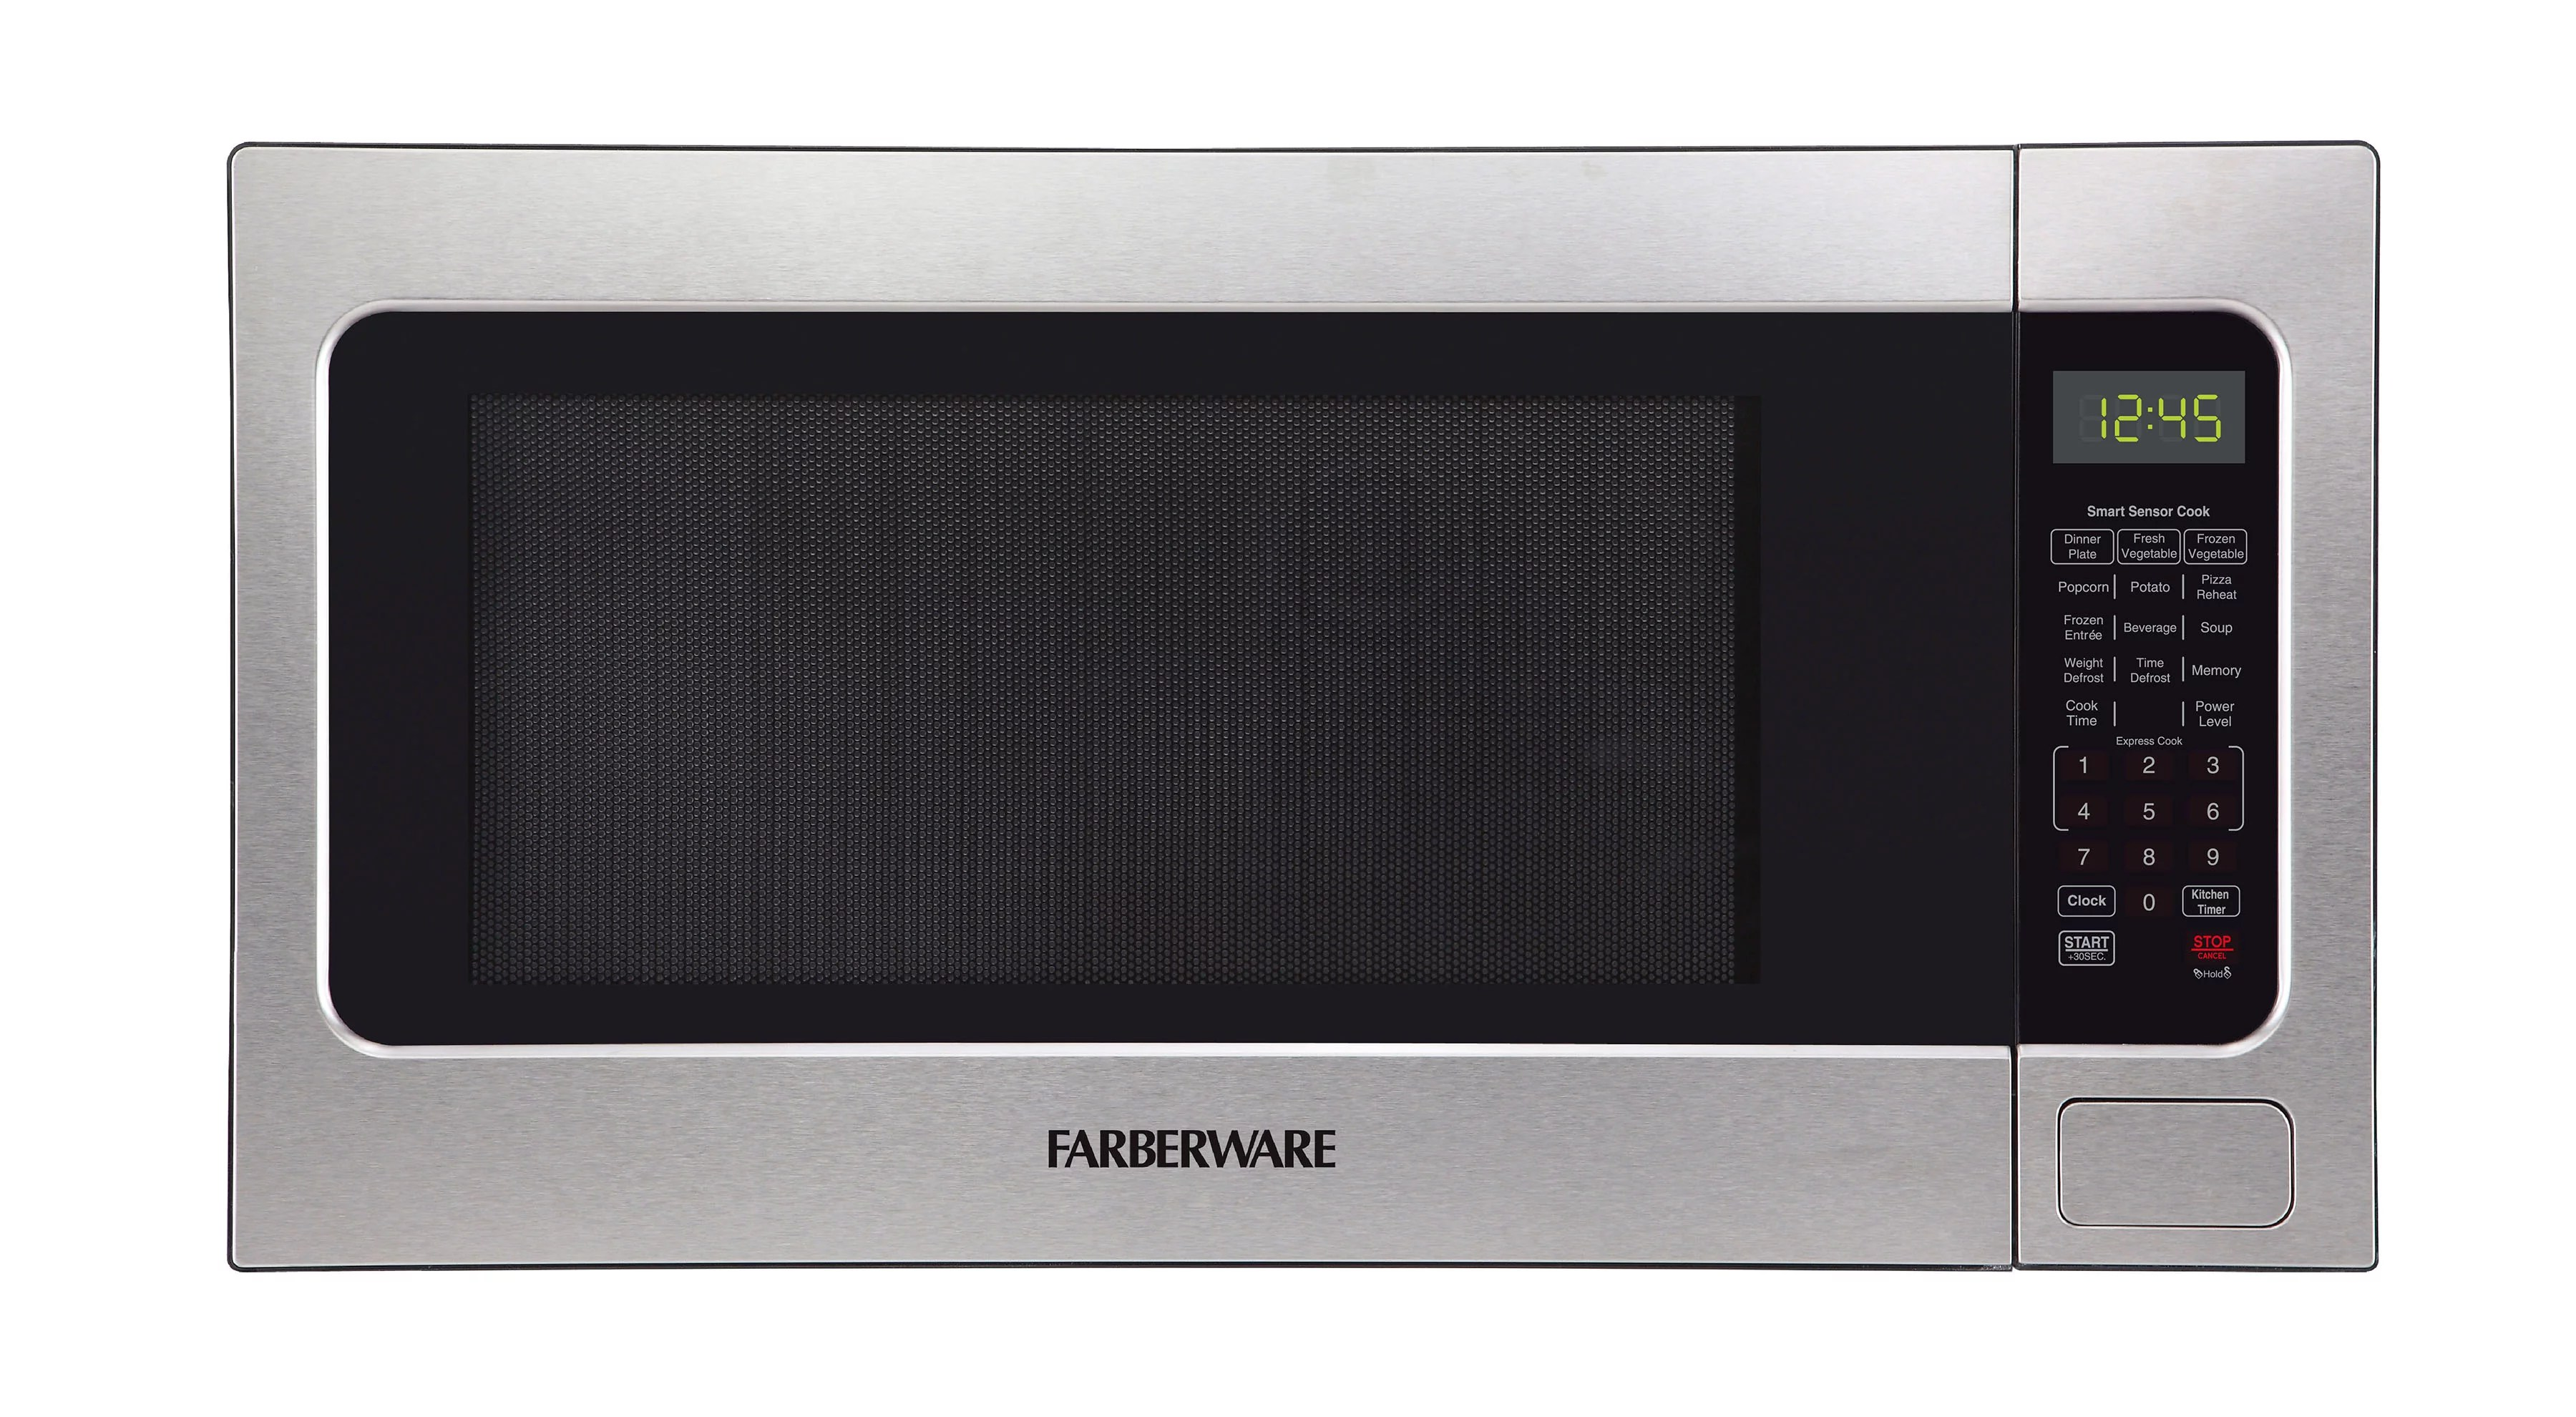 farberware 2 2 cu ft microwave oven stainless steel fmo22abtbkc